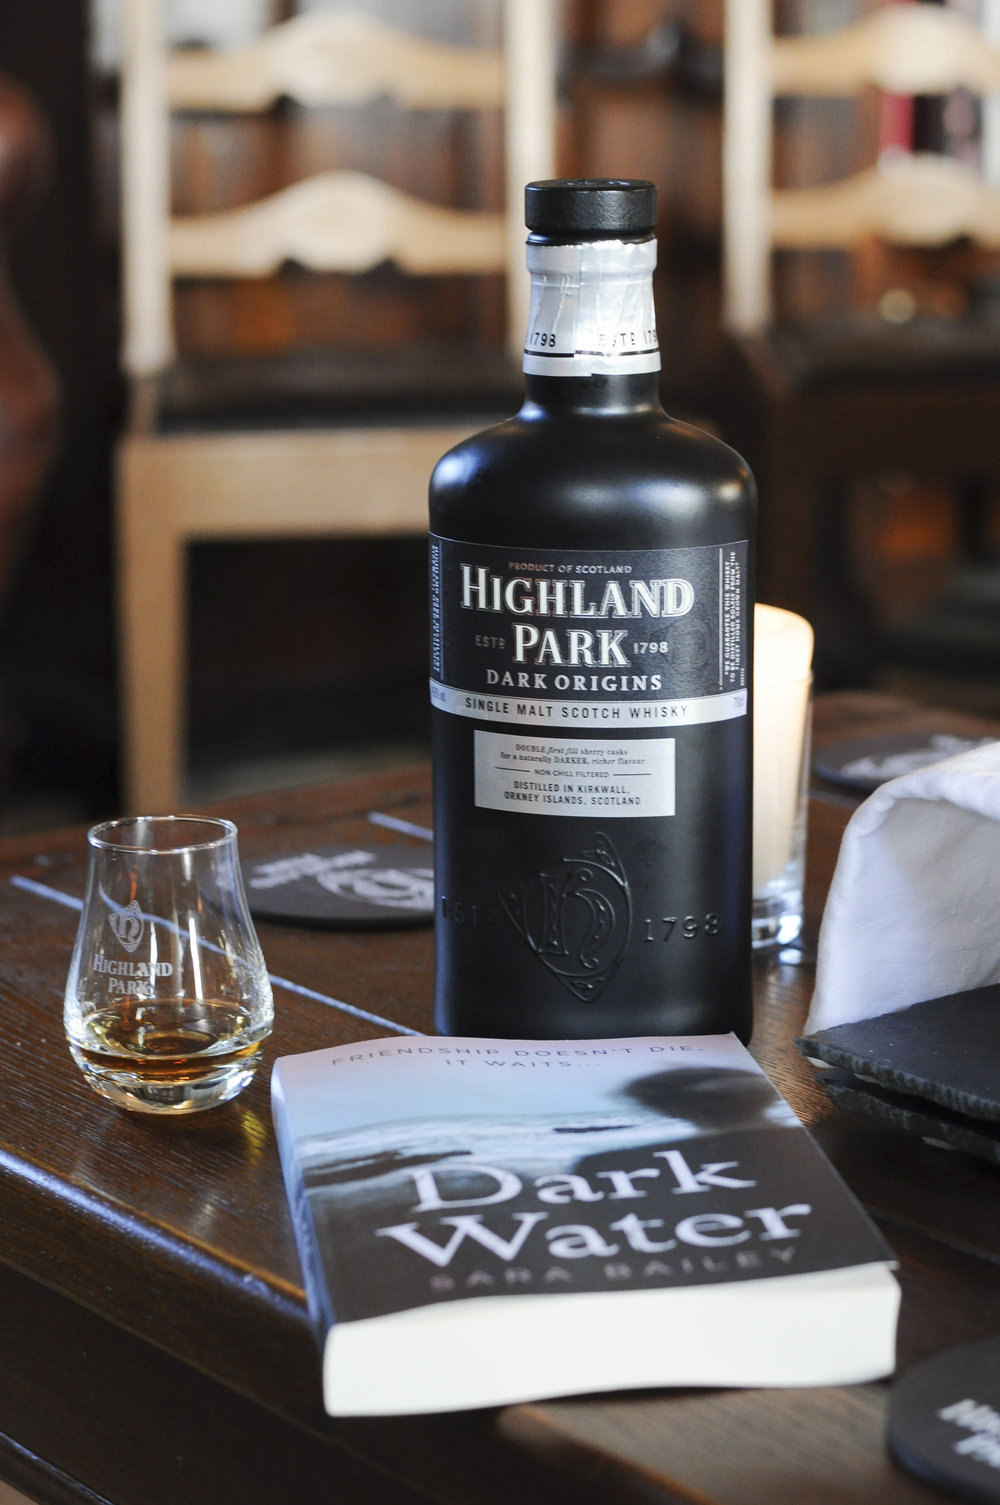 Dark Water with Dark Origins whisky